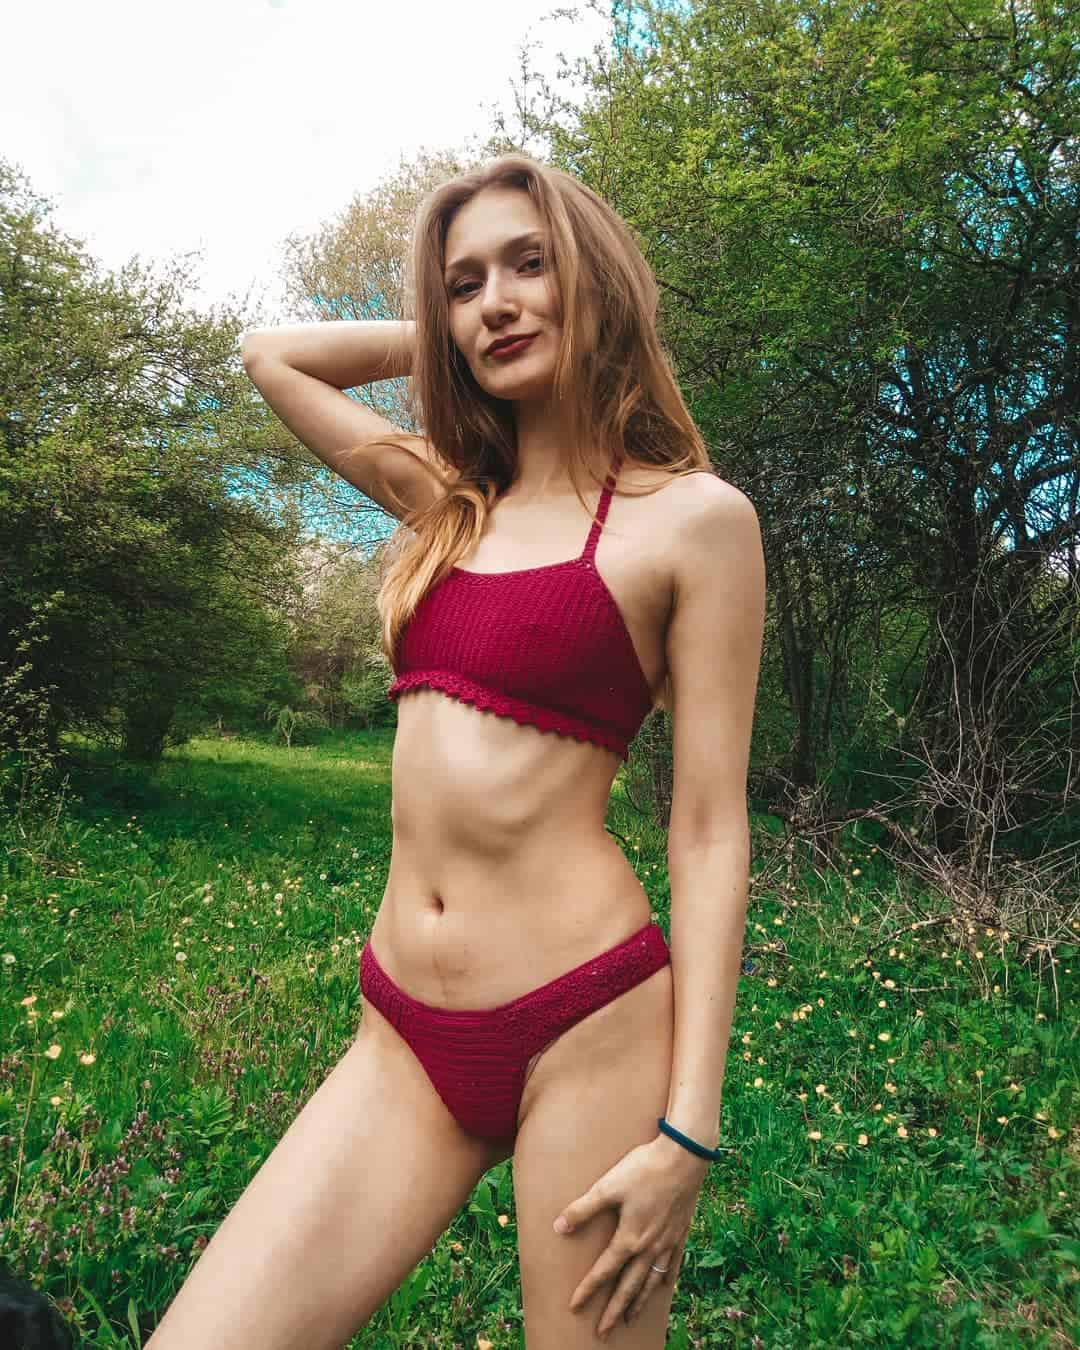 Best Swimsuits 2020 Top 9 Womens Swimsuits 2020 Trends and More about Color Options